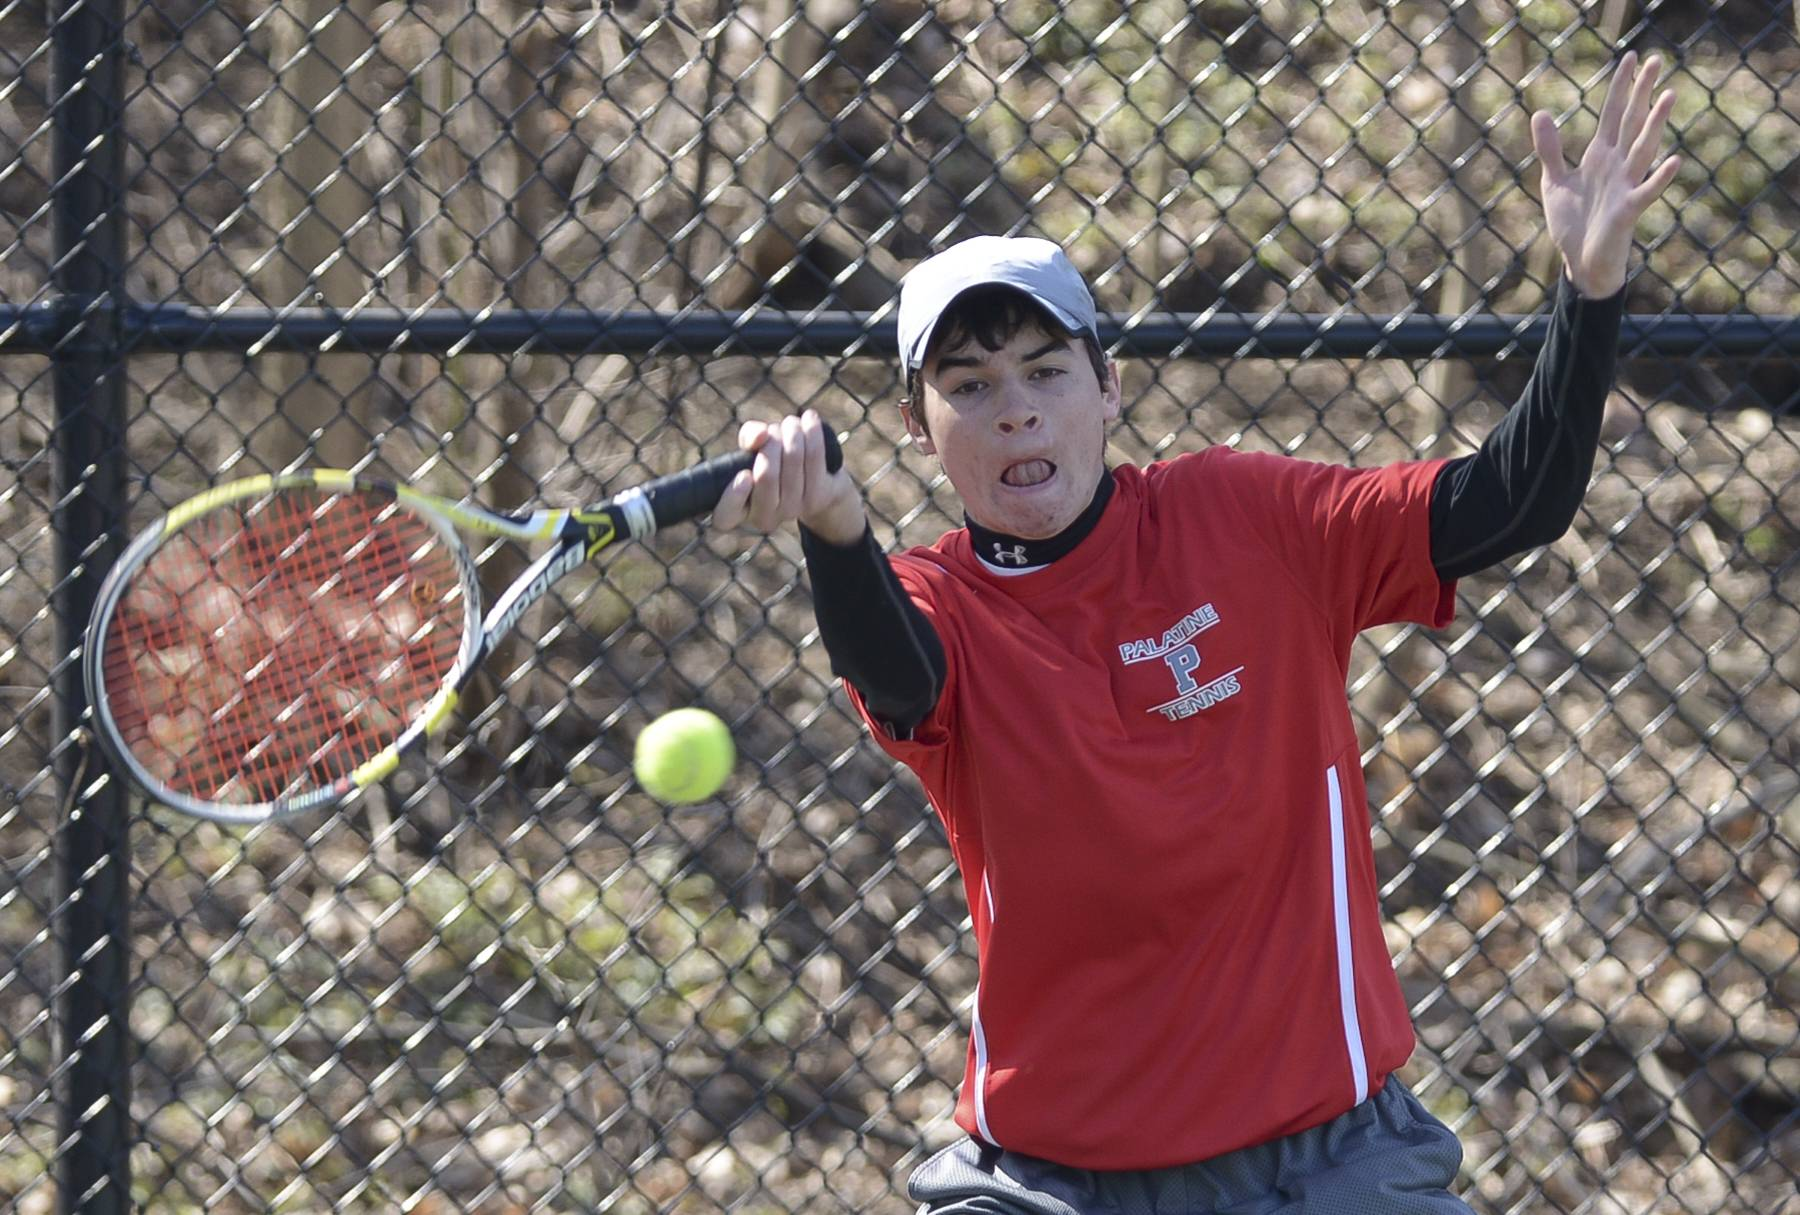 Palatine's Mark Scovic completes against Glenbard West's Nate Dell during the Glenbard West boys tennis invitational.